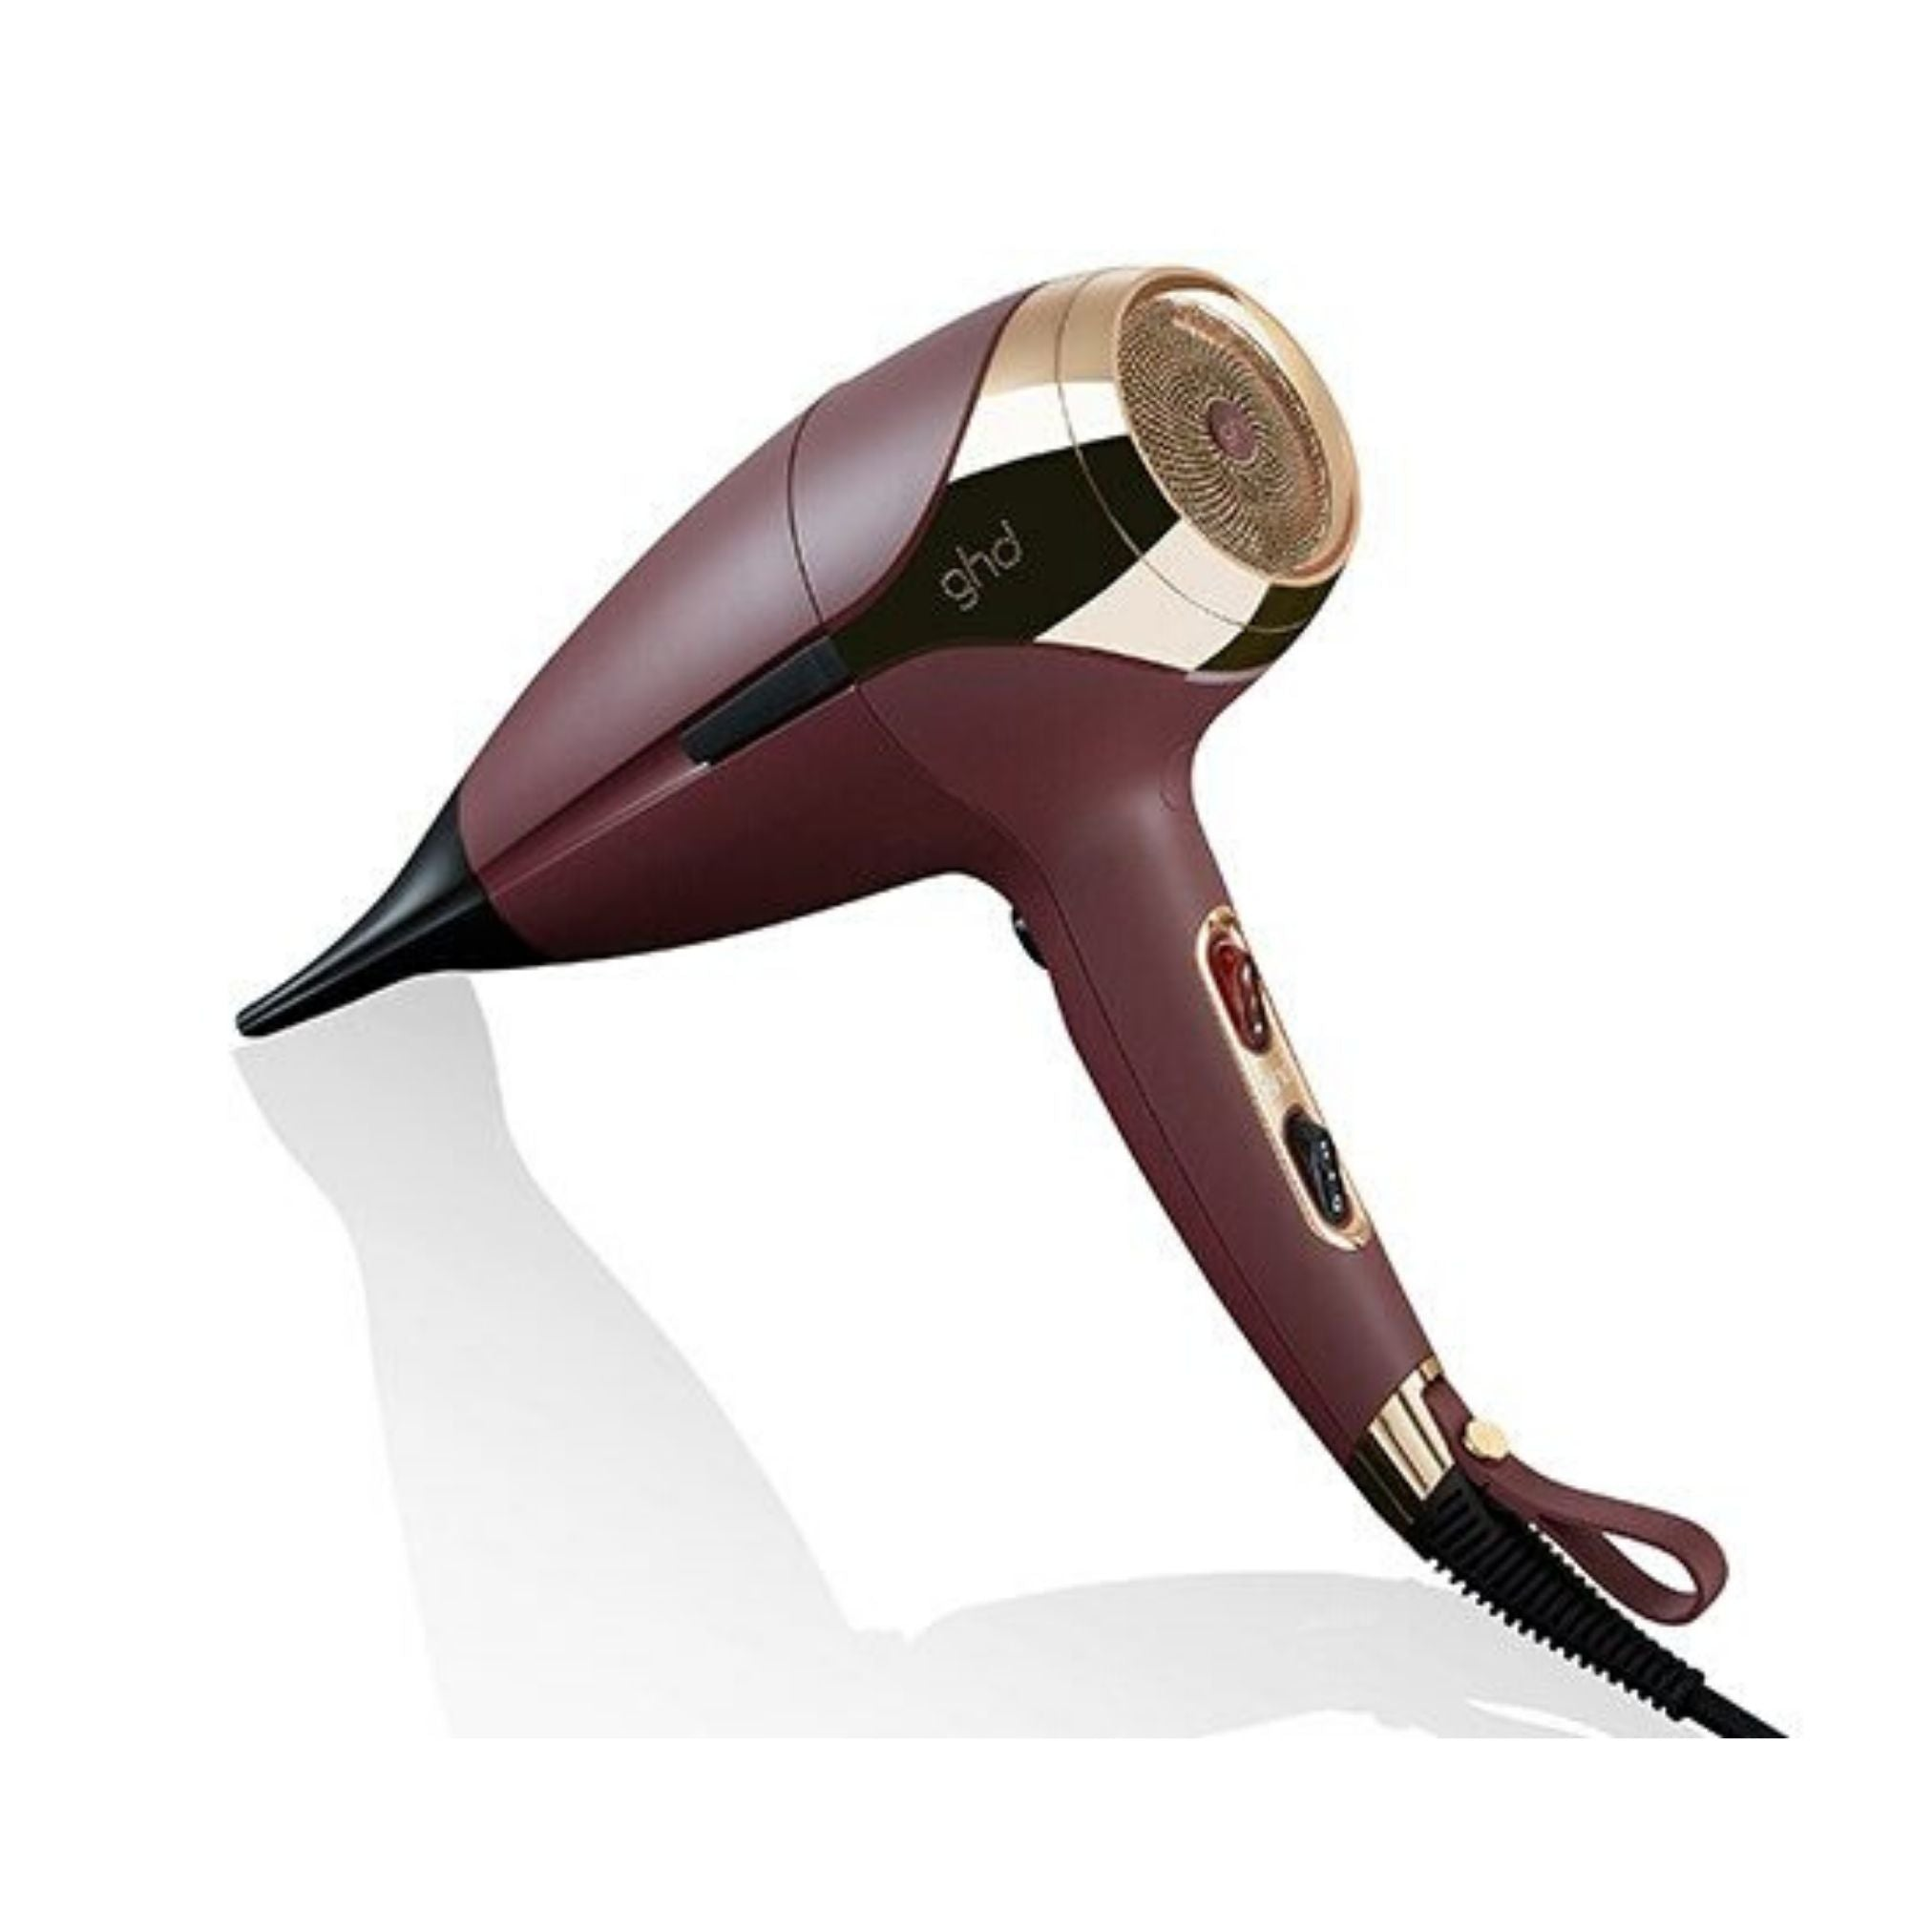 ghd Helios Hair Dryer